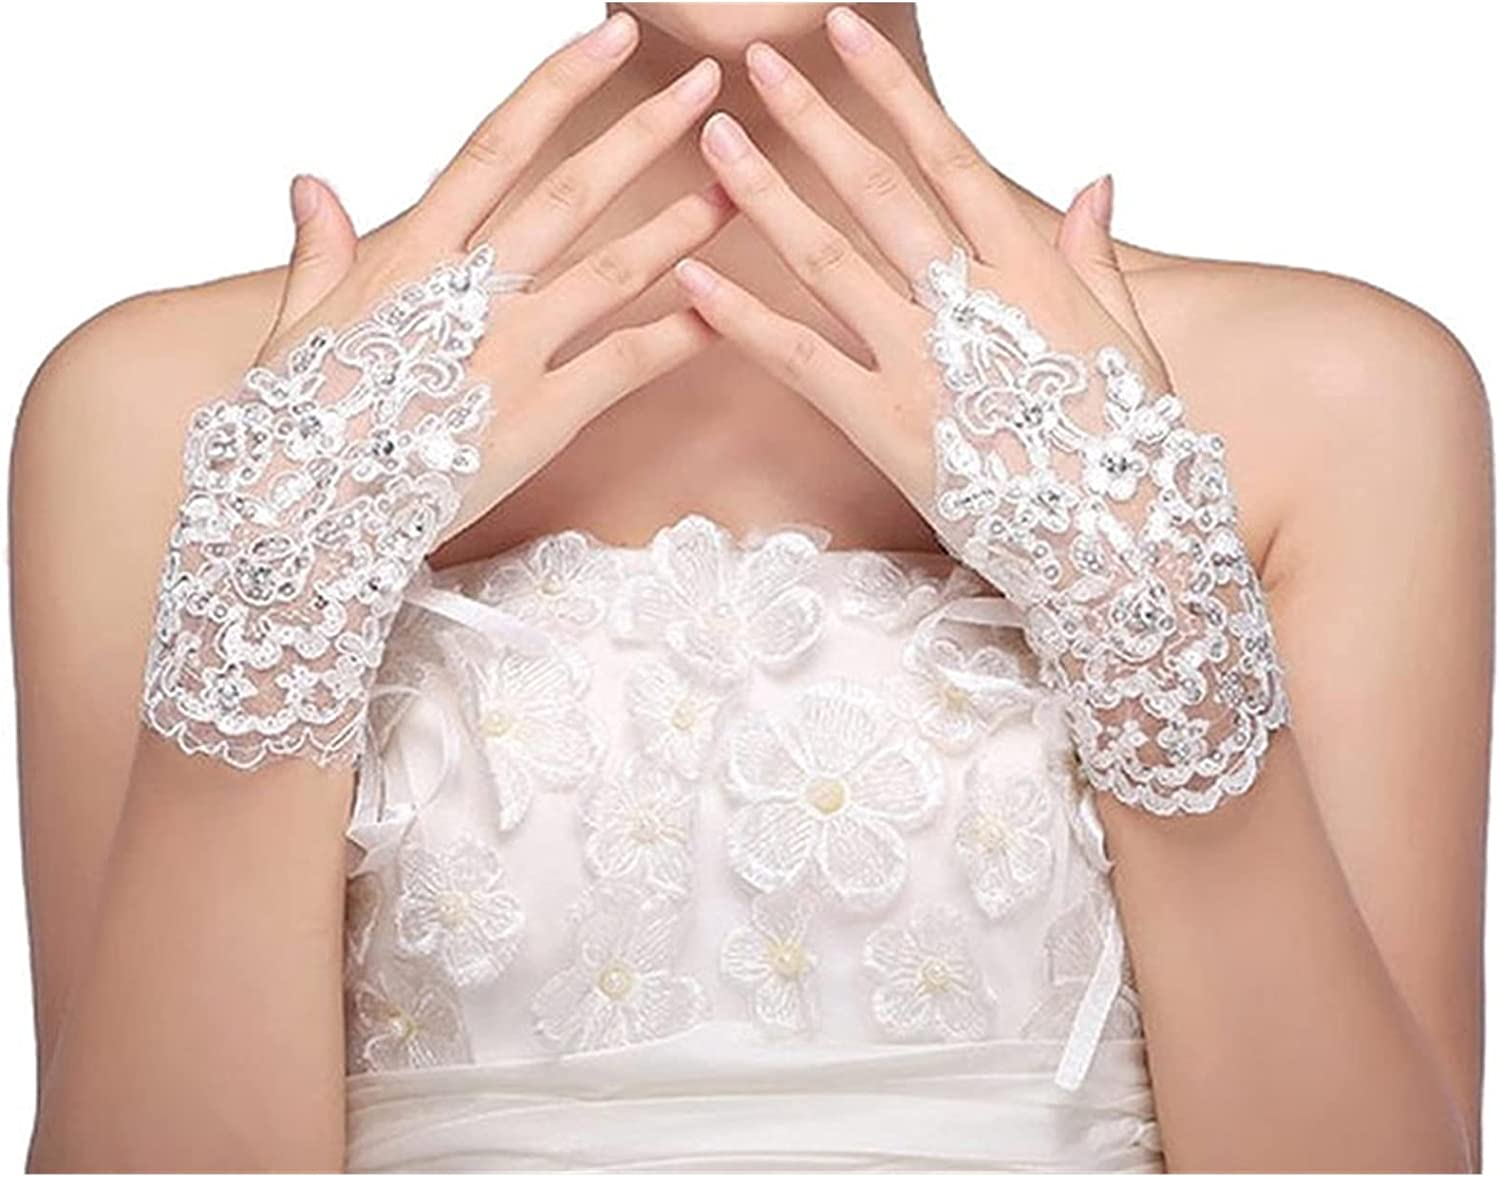 CHHNGPON Bridal Gloves 1 Accessories Fin NEW before selling Las Vegas Mall Gown Pair